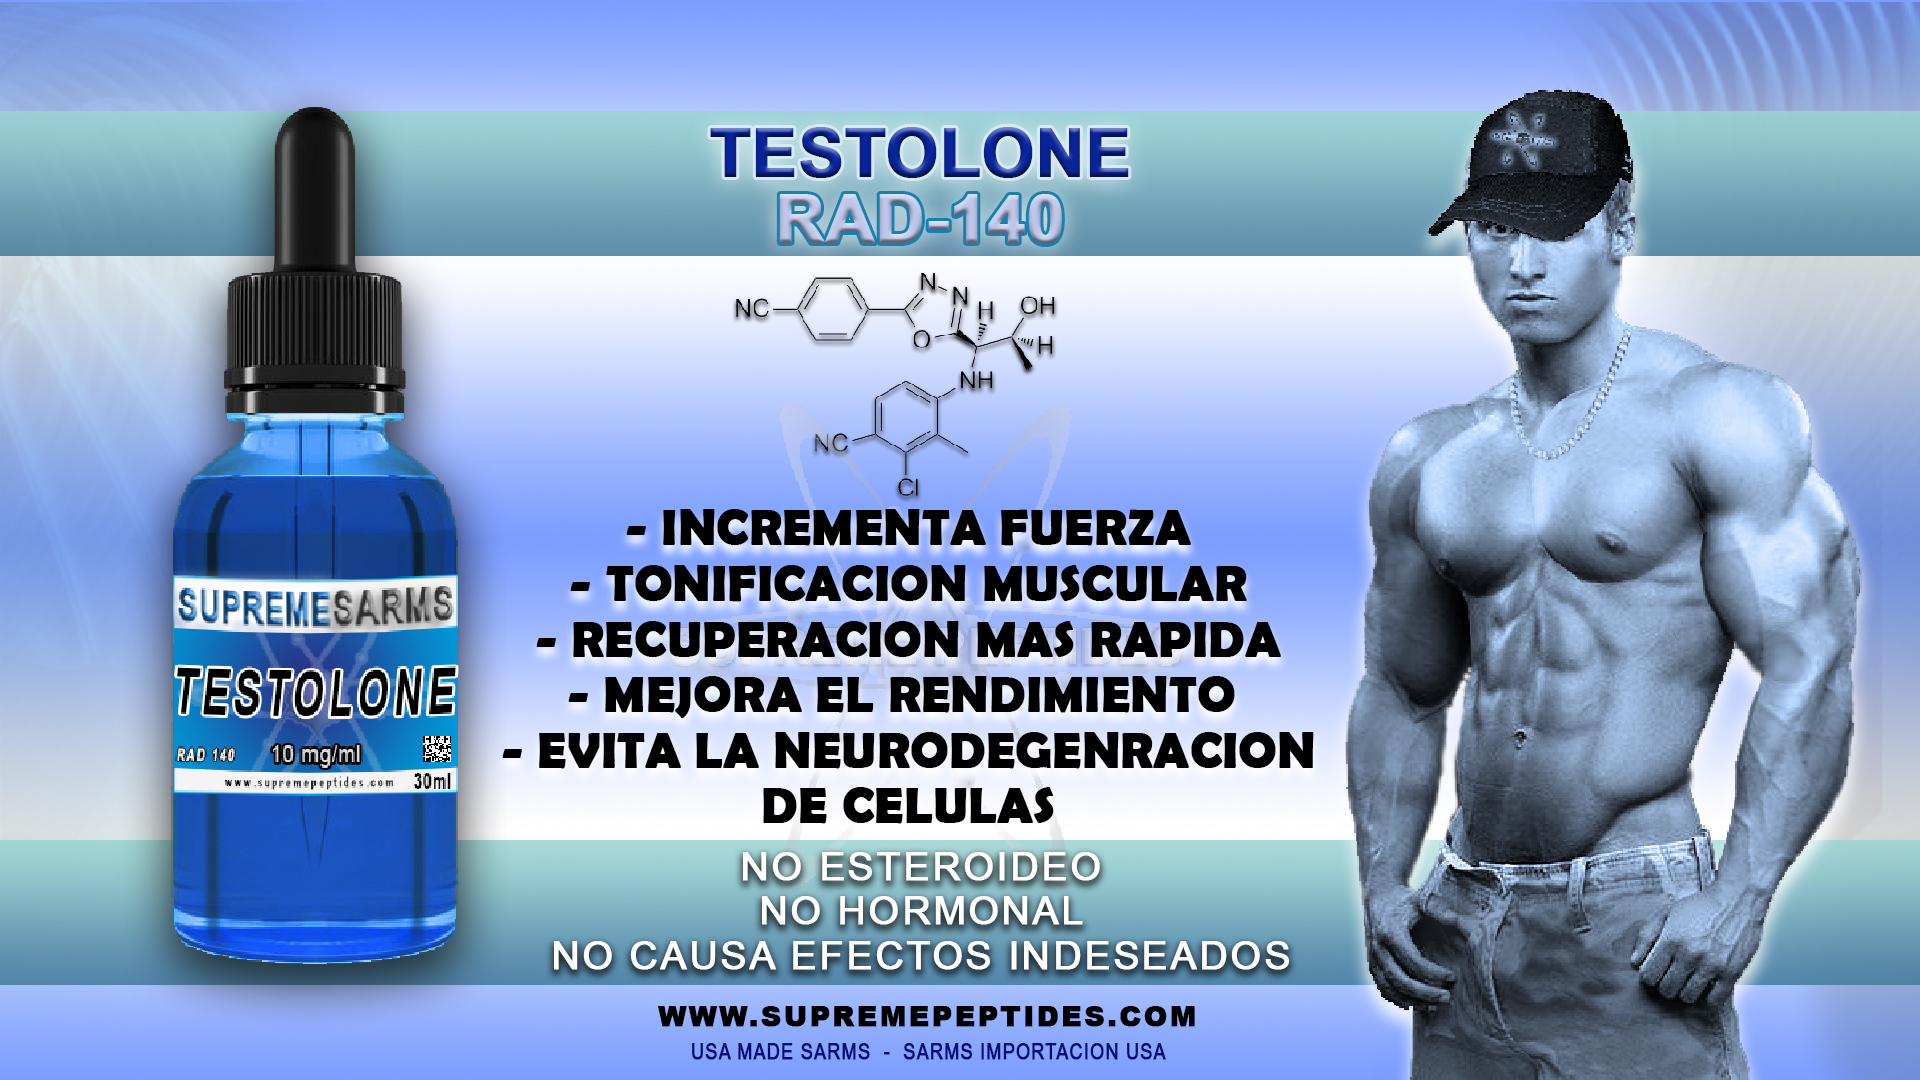 TESTOLONE - RAD 140 (10mg/ml)